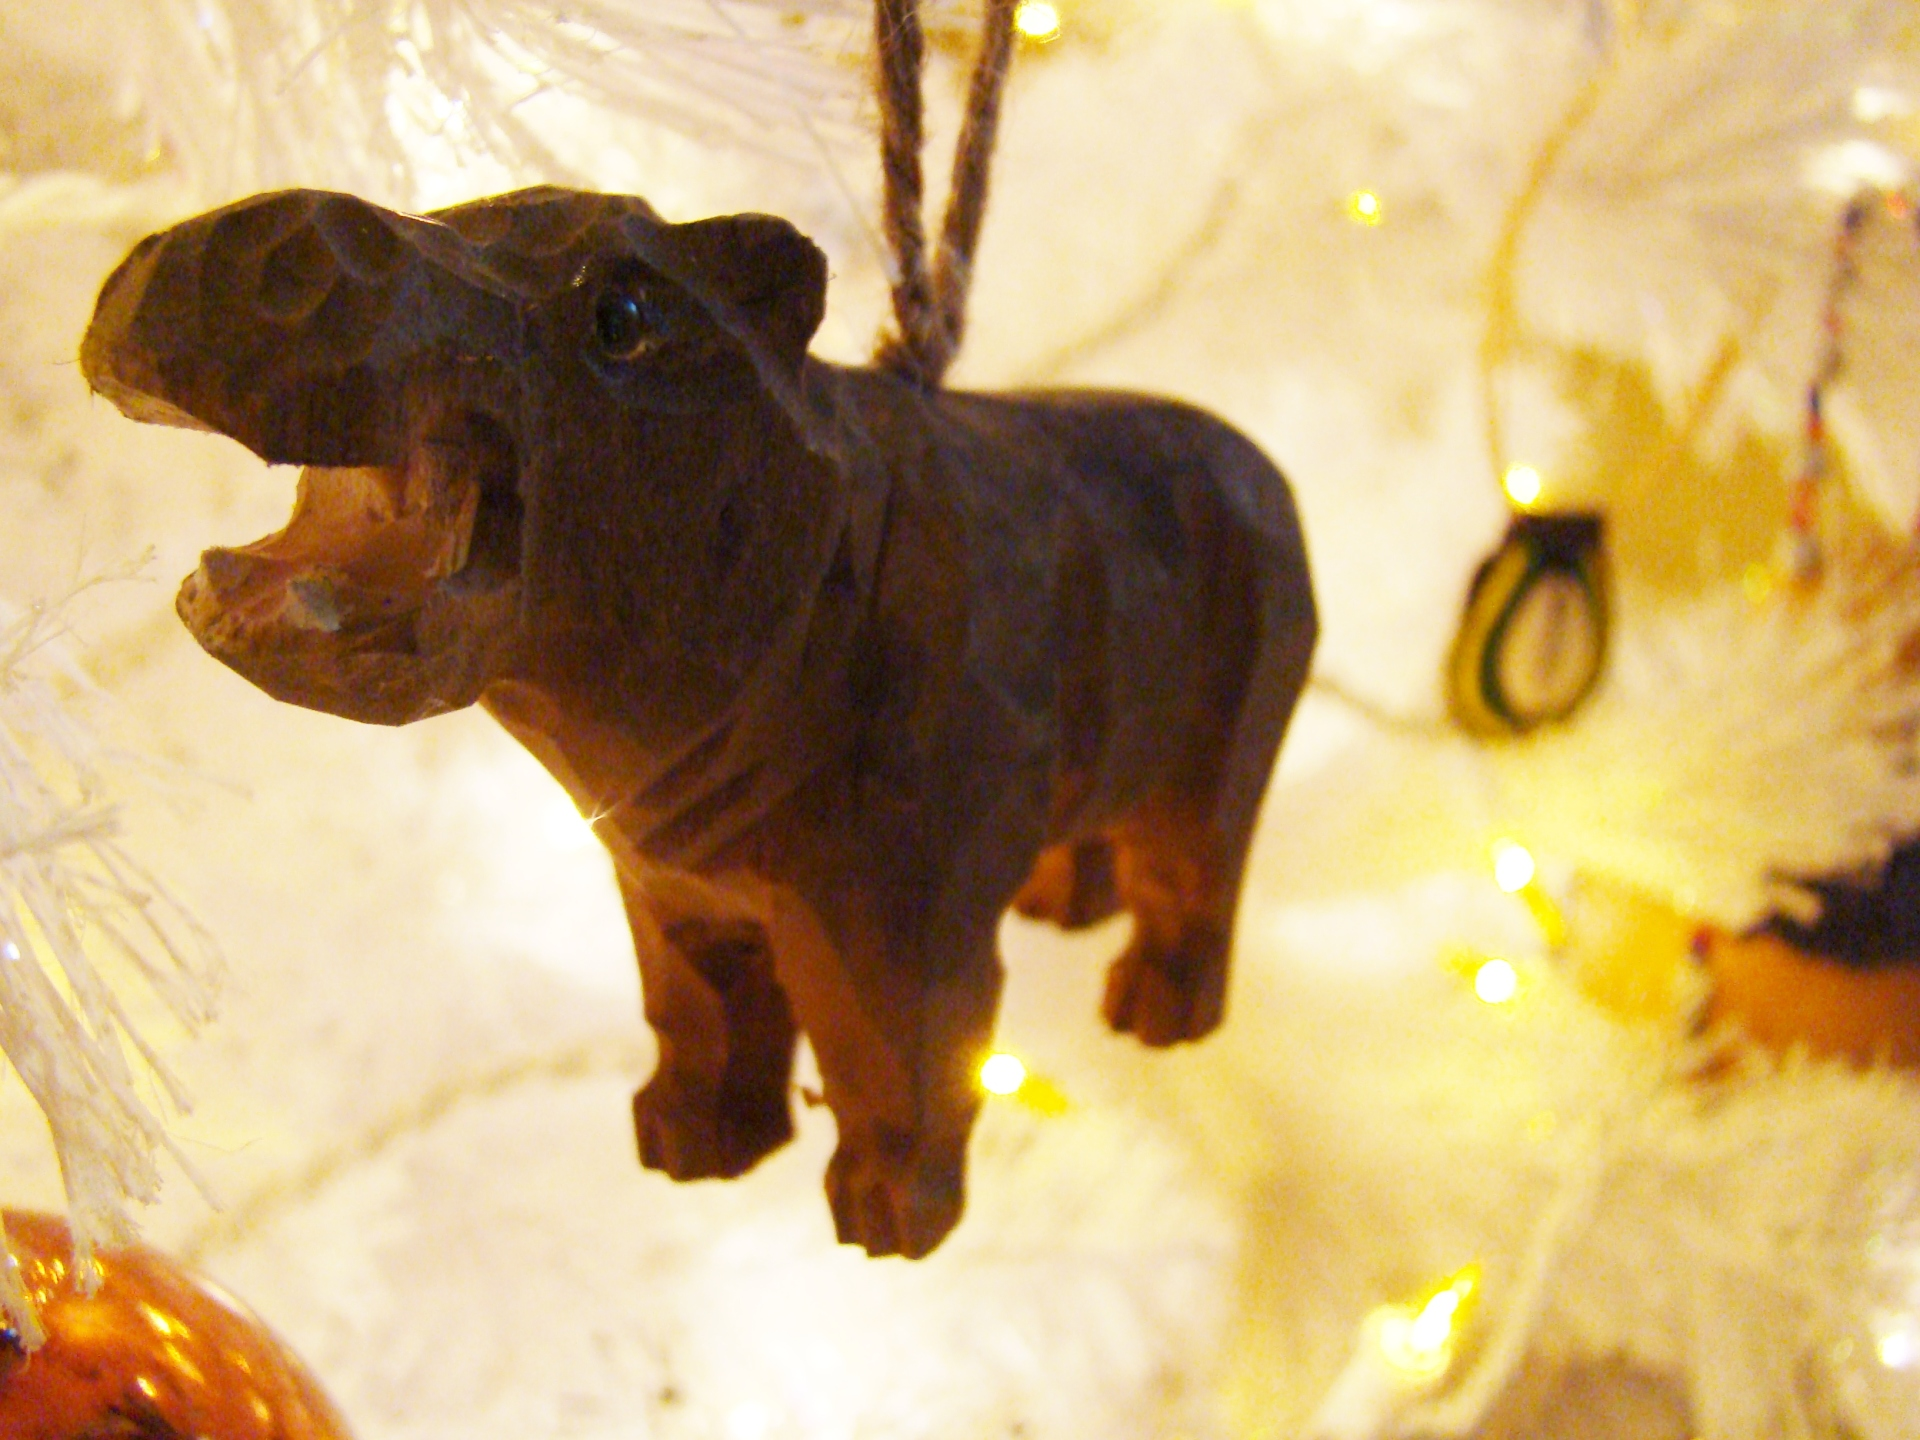 Fiorito Interior Design, interior design, Homes For The Holidays, African, holiday tree, carved wooden hippo ornament